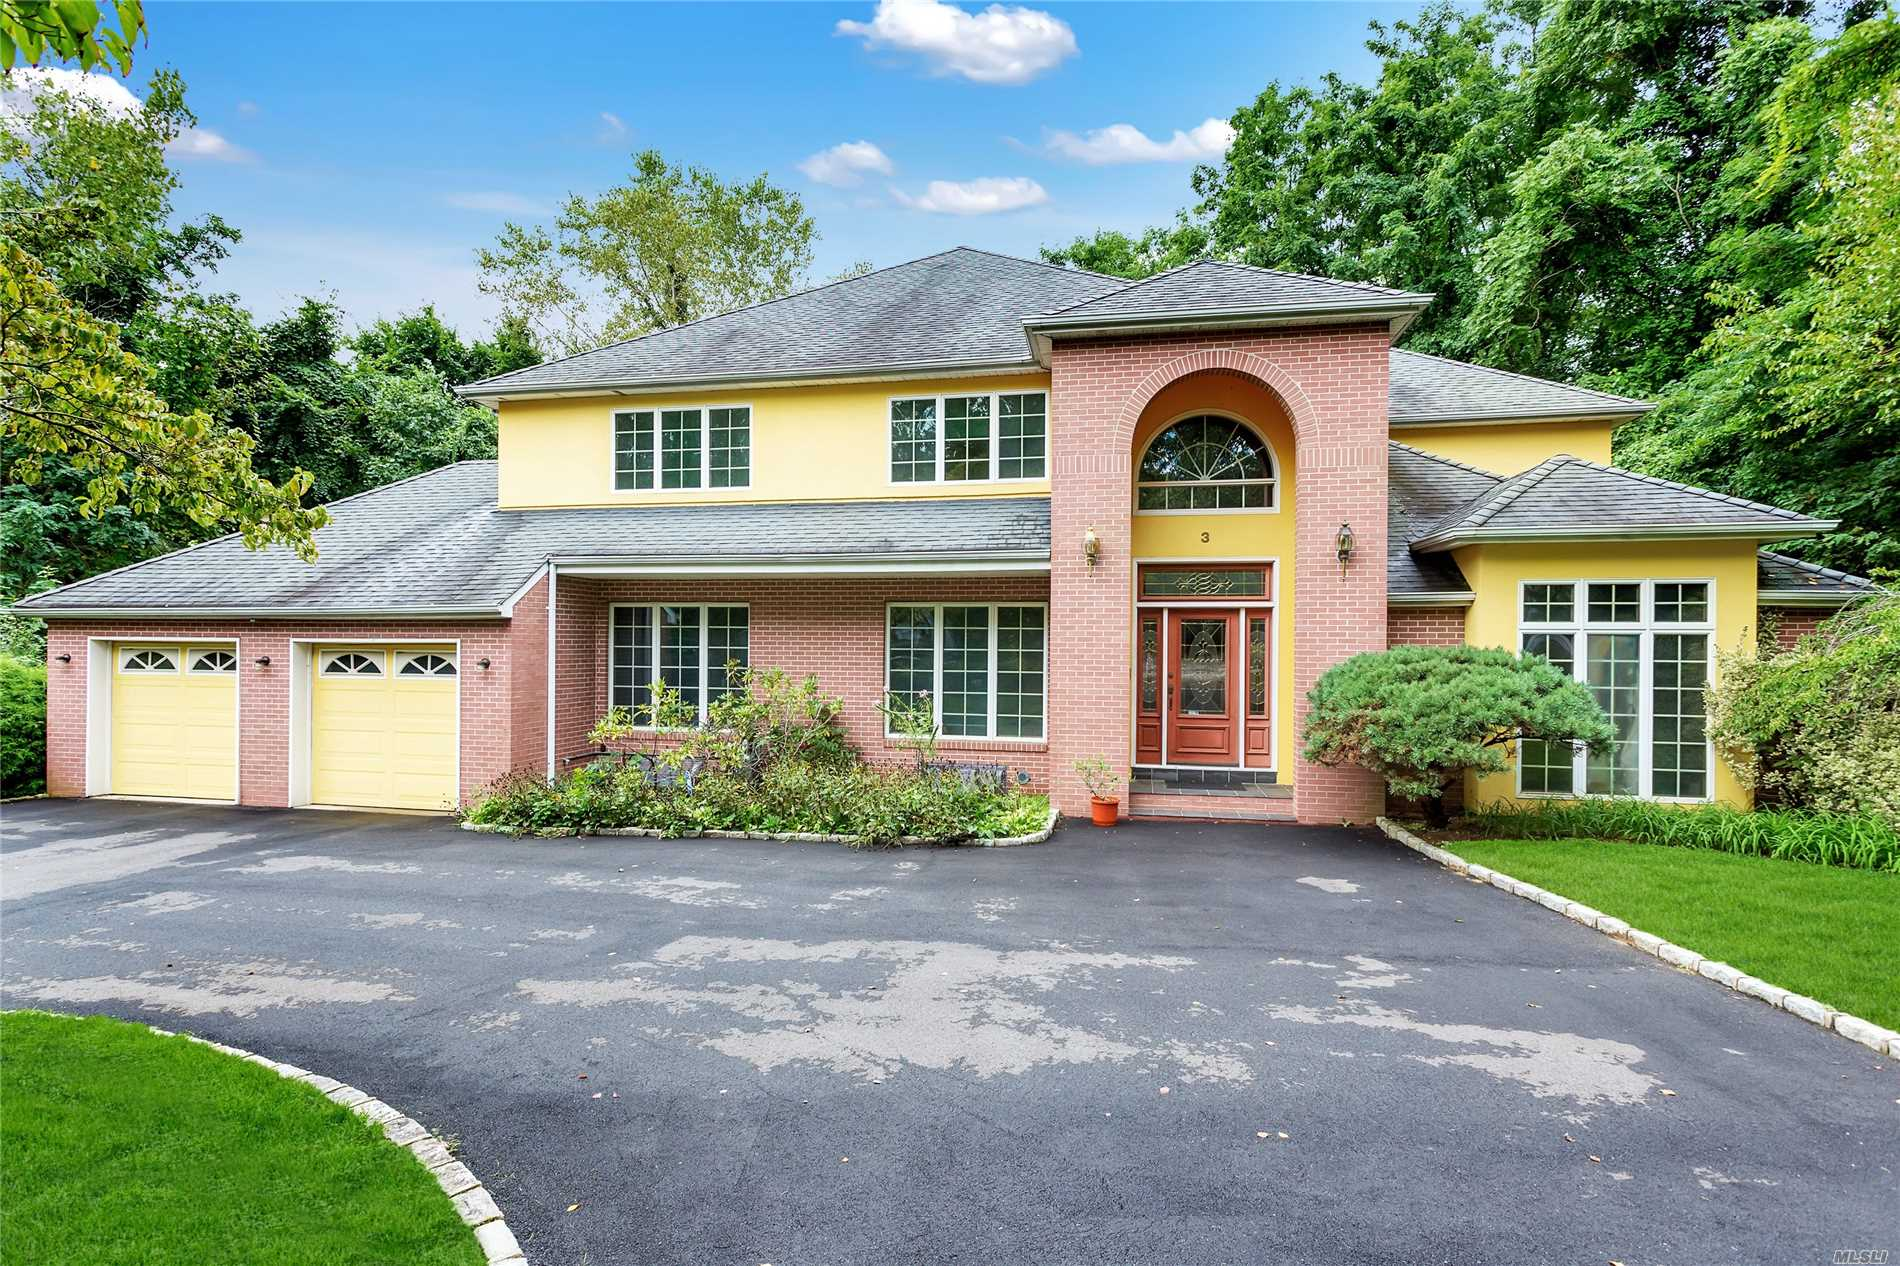 Colonial Contemporary Has High Ceiling Foyer Entrance, 7 Bedrooms And 4 Bathrooms, Two Master Bedroom( One In 1st Floor). Guest Room And Bath. Master Has Jacuzzi, Separate Shower And Large Walk In Closet, 4 Other Bedrooms And Bath On Over 1 Acres Lot In Flower Hill. Circular Driveway. Near St Frances Hospital And Americana Shopping Mall, 27 Min. Away To Penn Station Thru Lirr. Has Lap Swimming Pool,